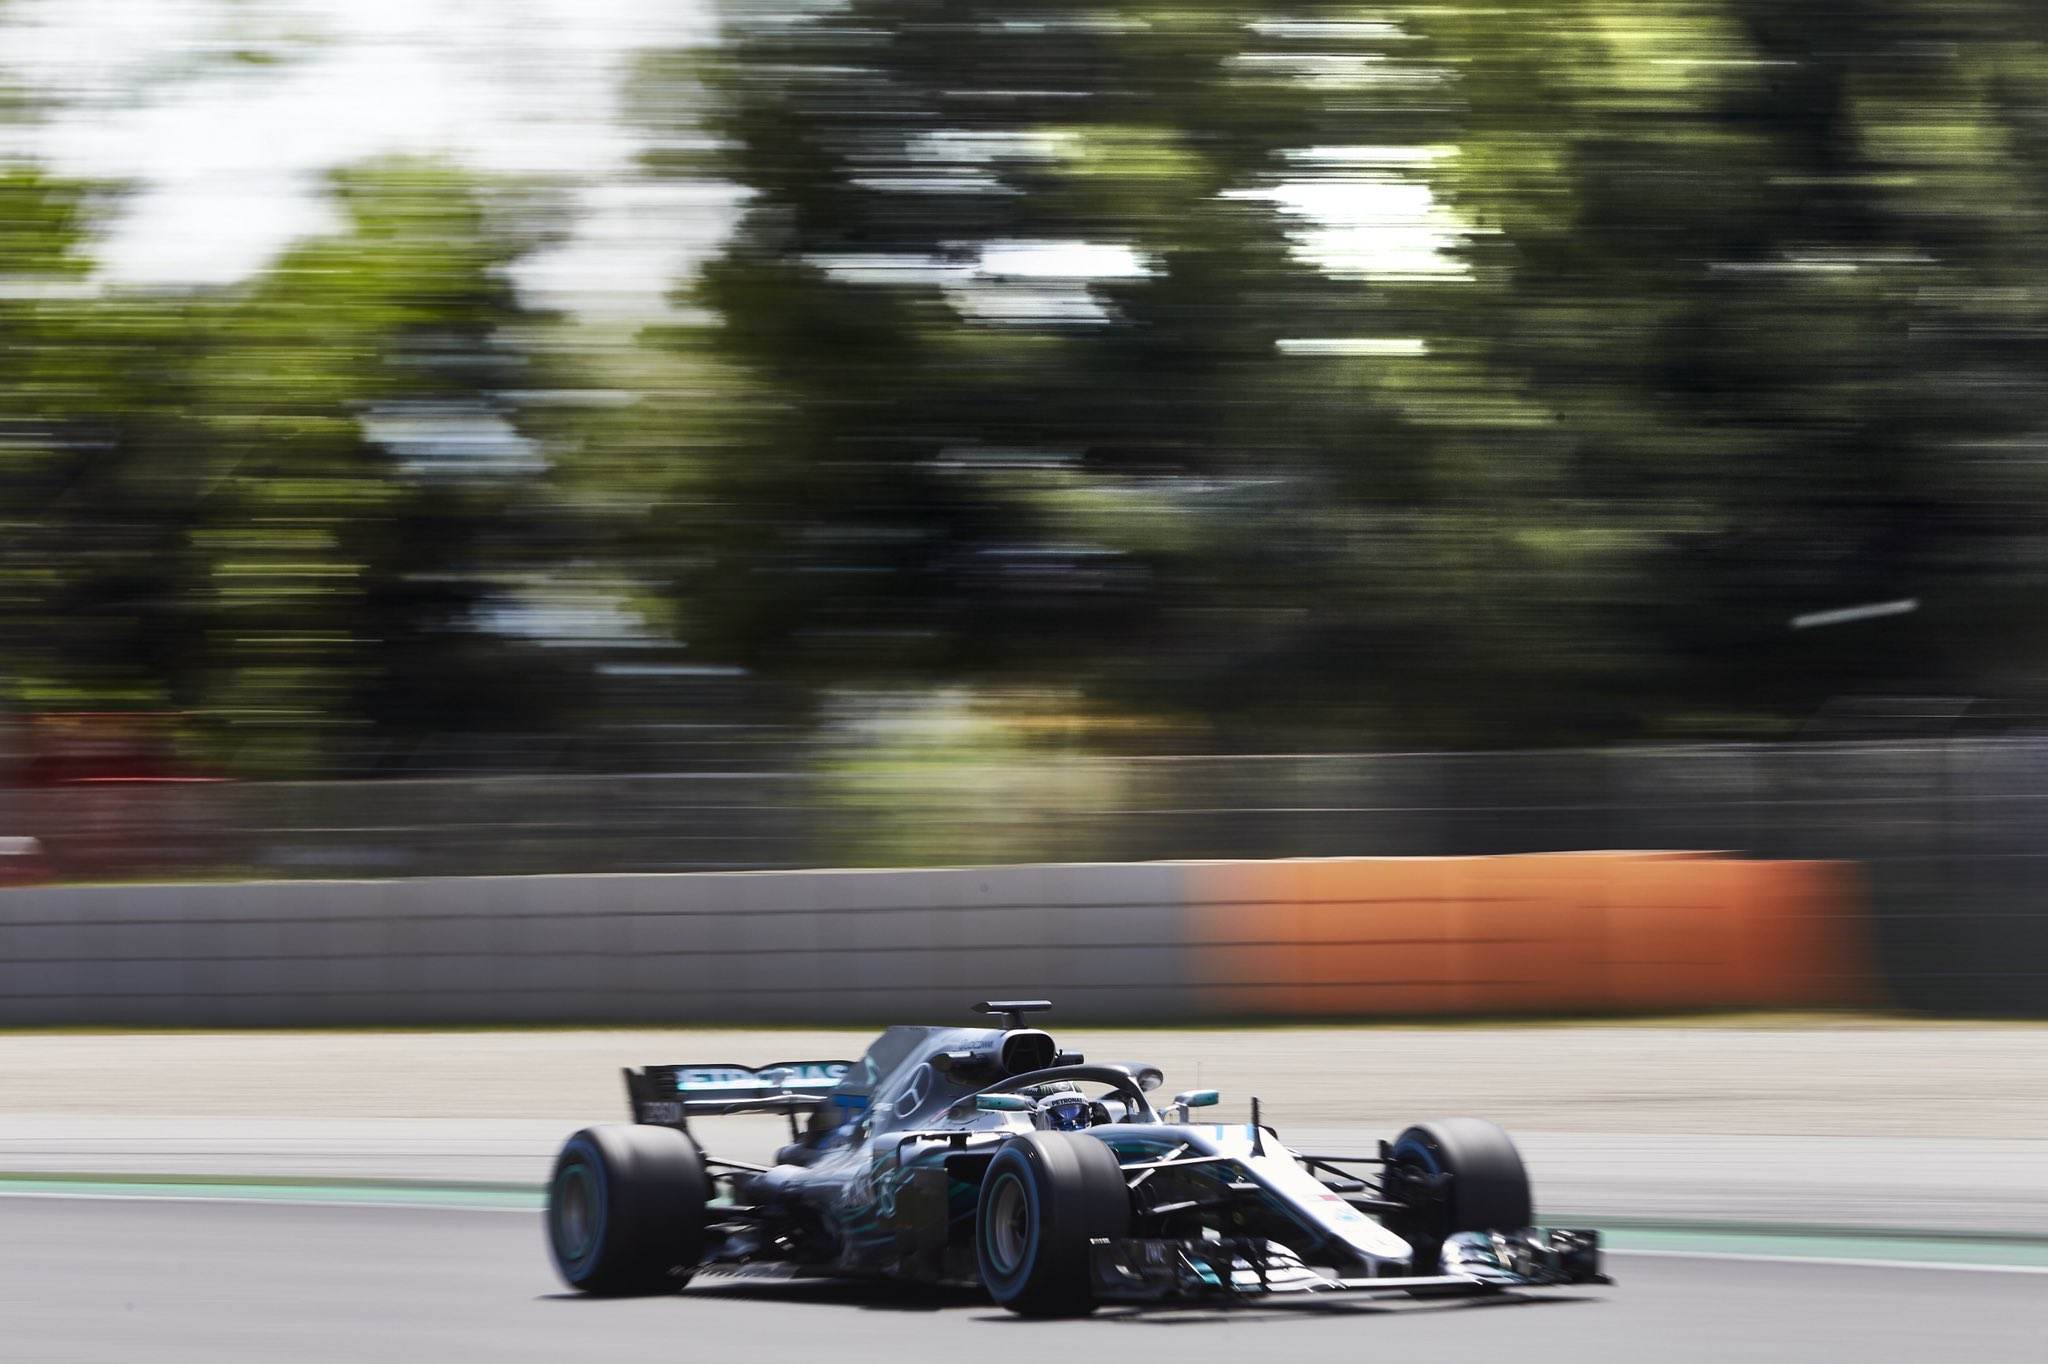 REPORT: @ValtteriBottas hits 139 laps to close out #F1Testing in Barcelona �� https://t.co/qWVi692Qnk #F1 https://t.co/aKmOeDF6U2